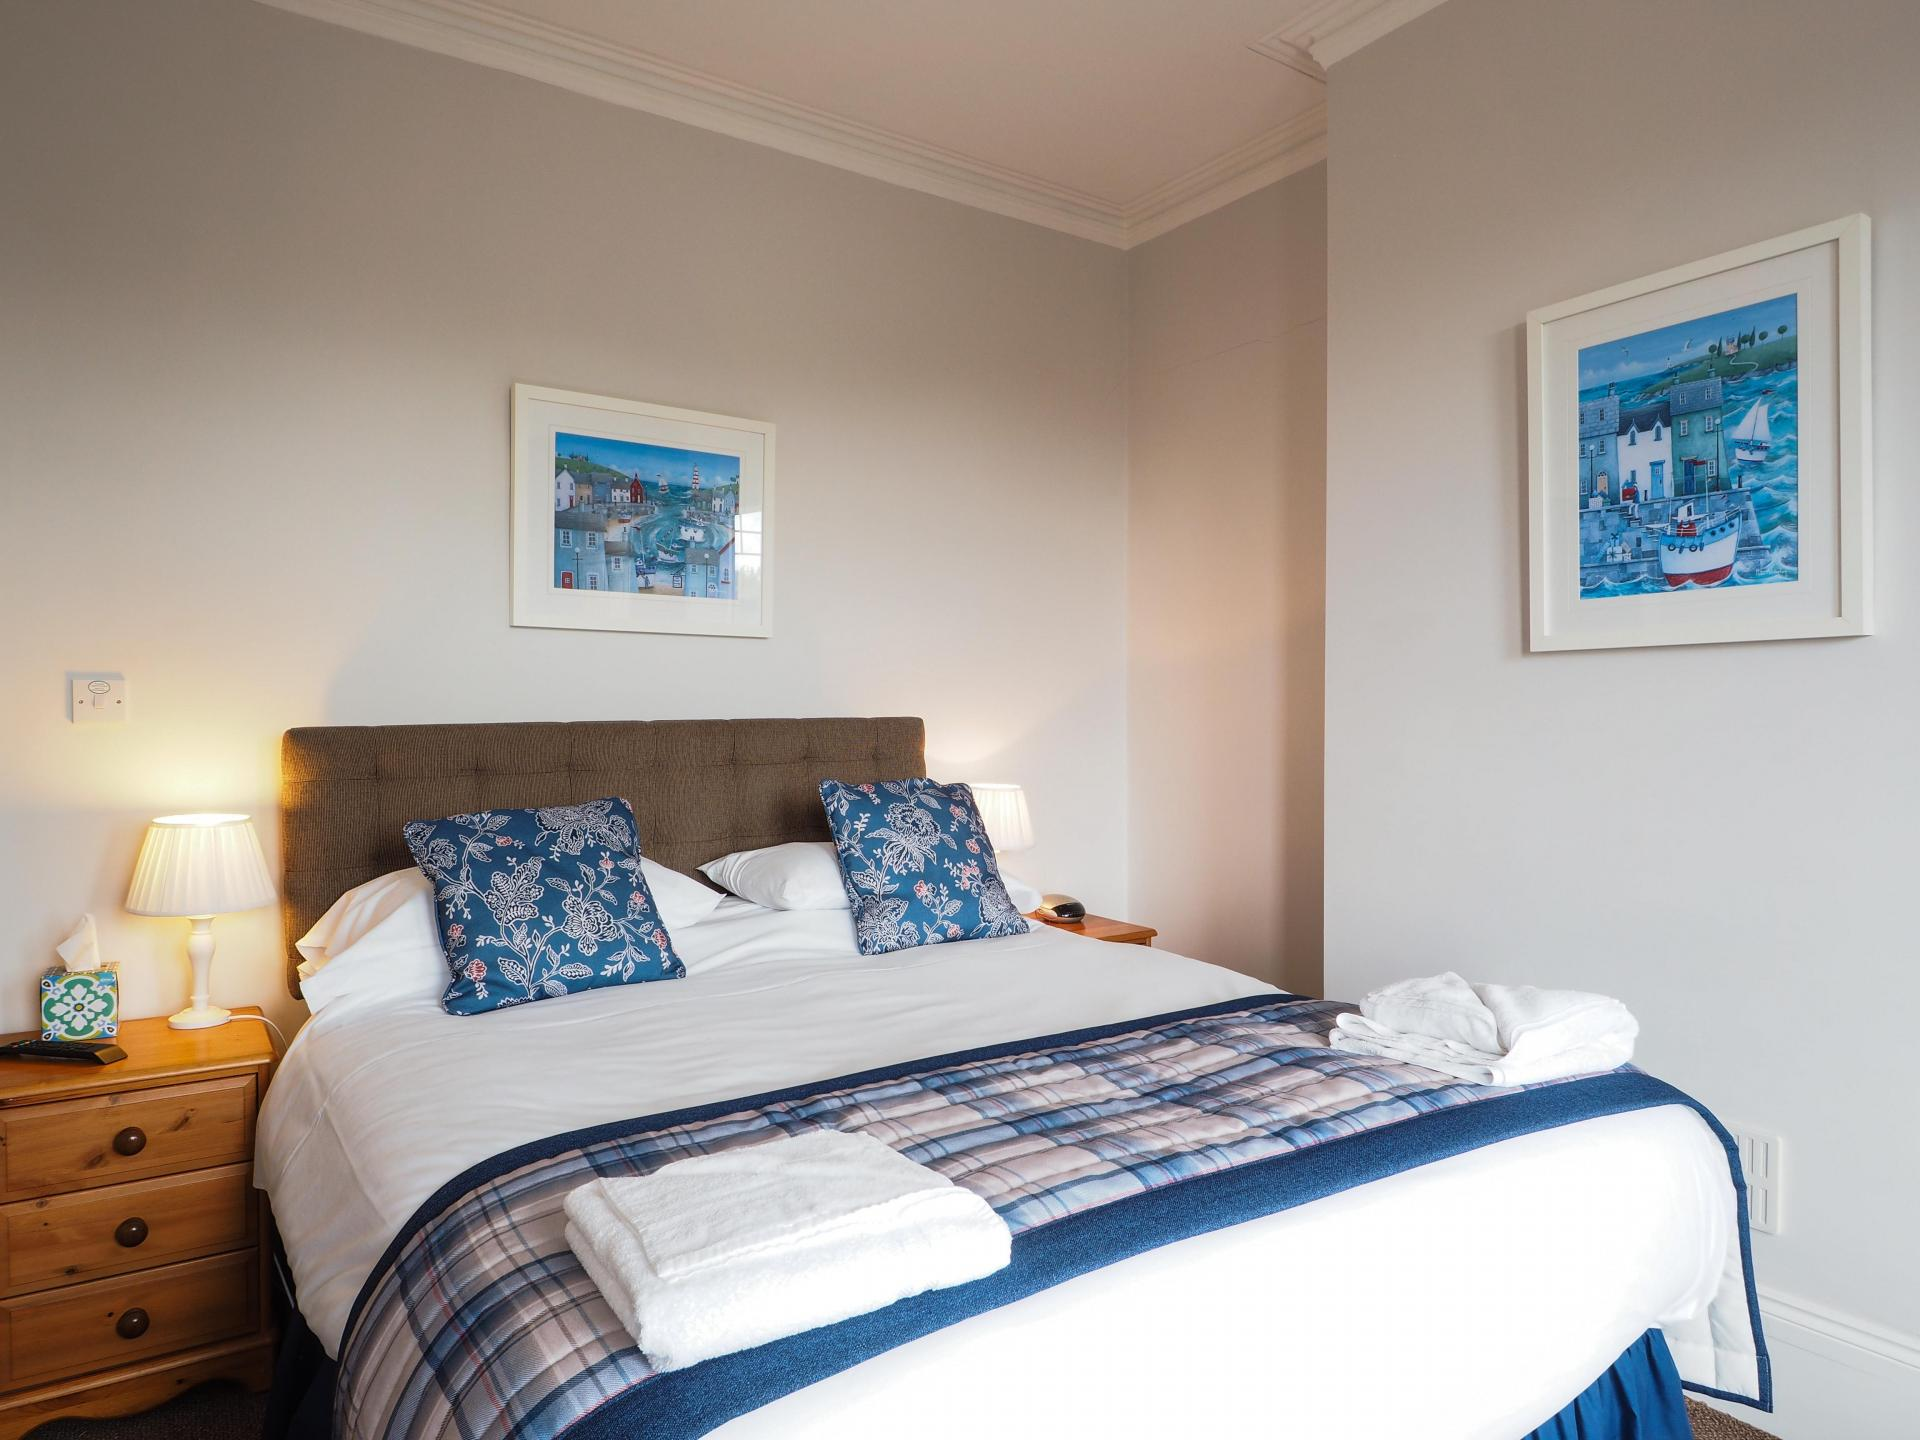 King En-Suite Room with Sea View and Balcony first floor (inc. breakfast)